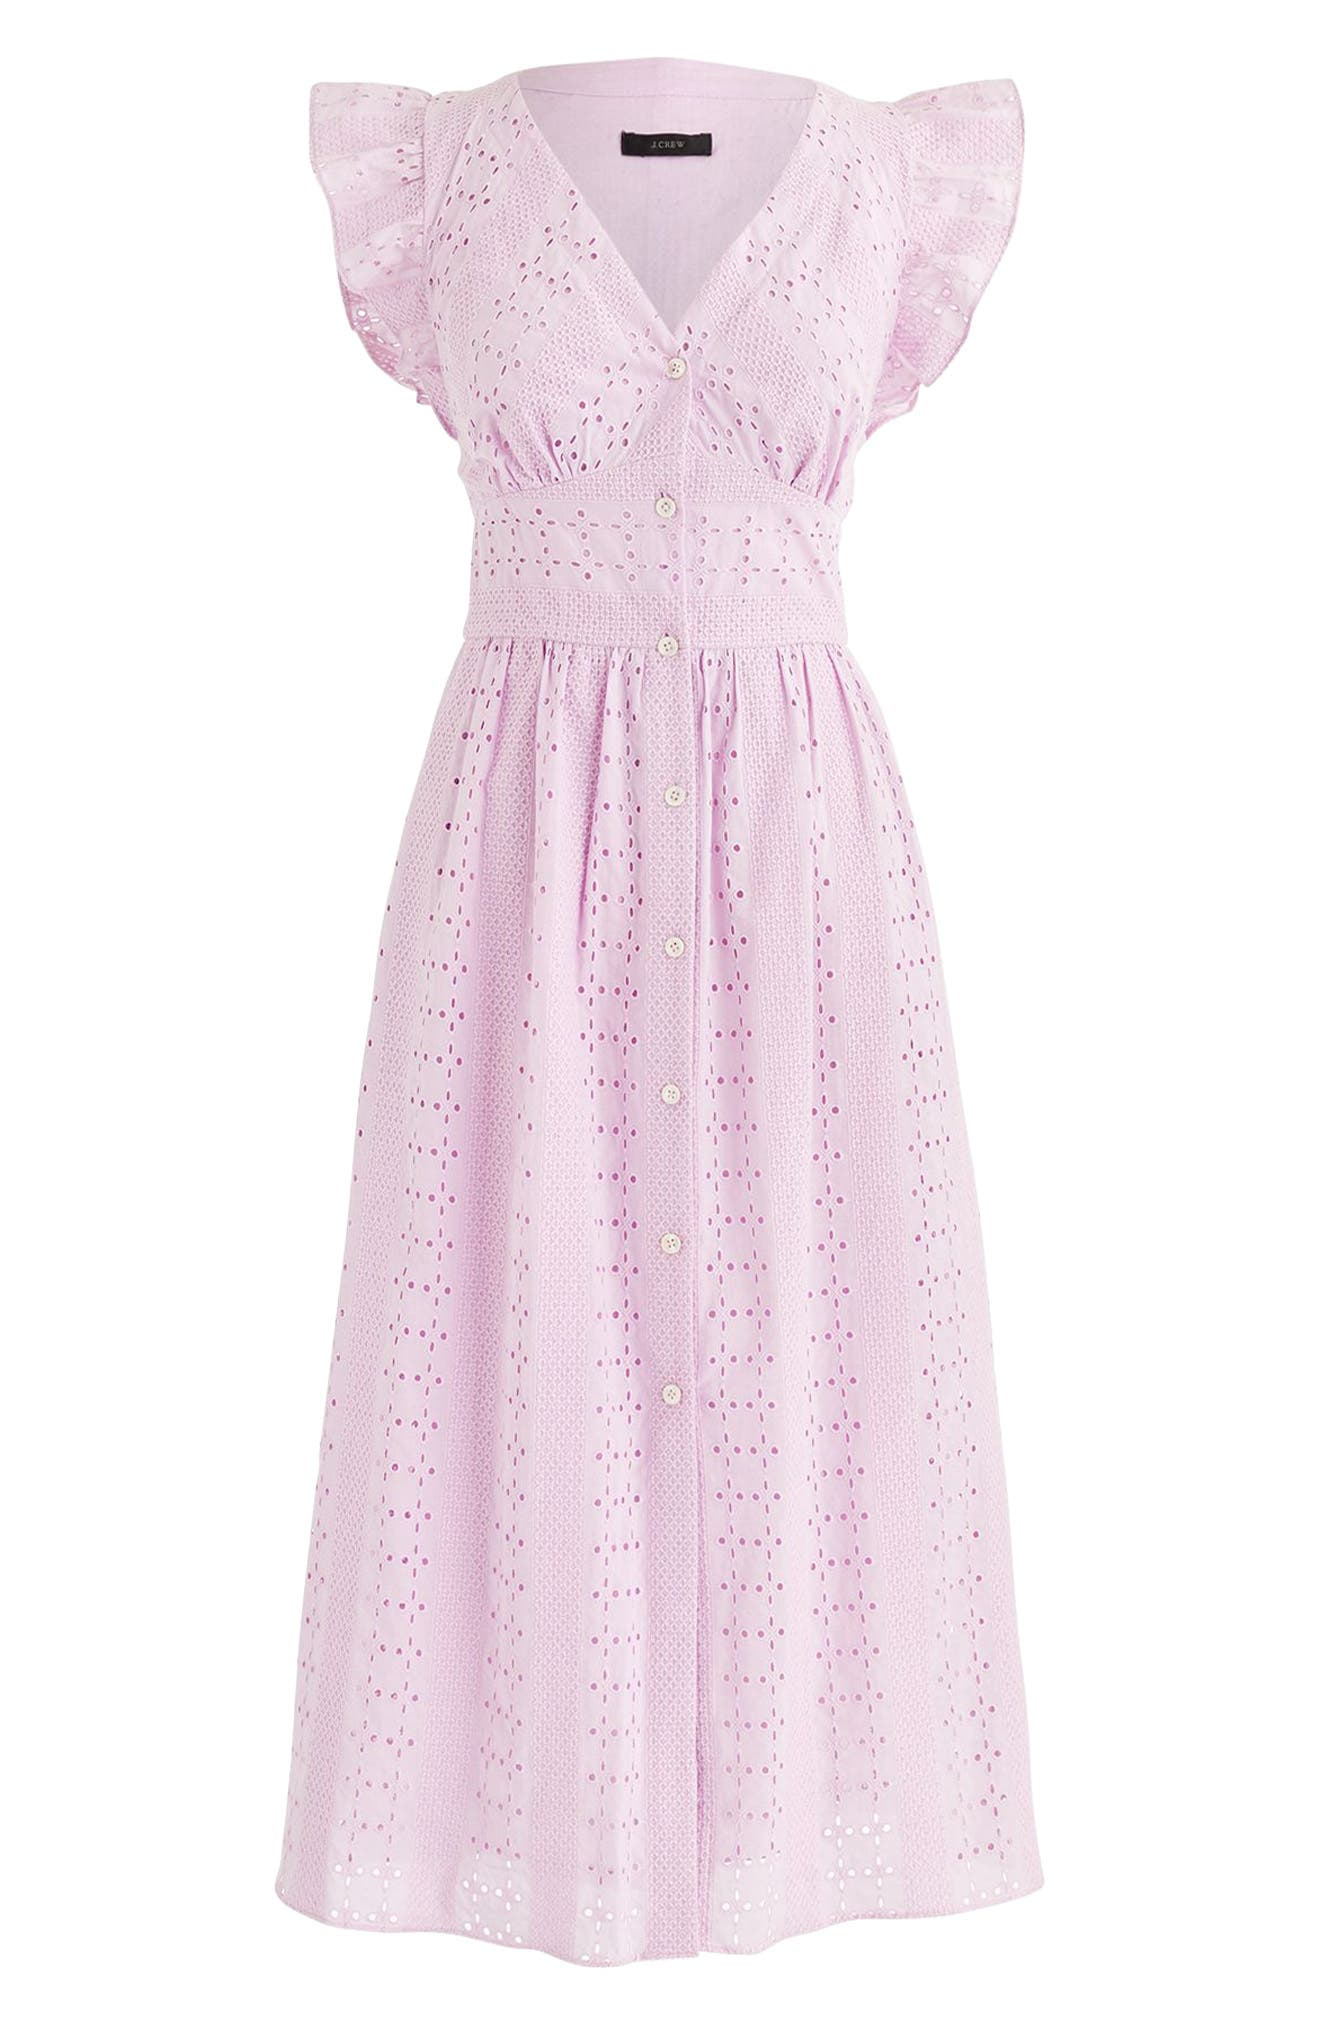 Ruffle Sleeve Eyelet Dress,                             Main thumbnail 1, color,                             Lavender Mist